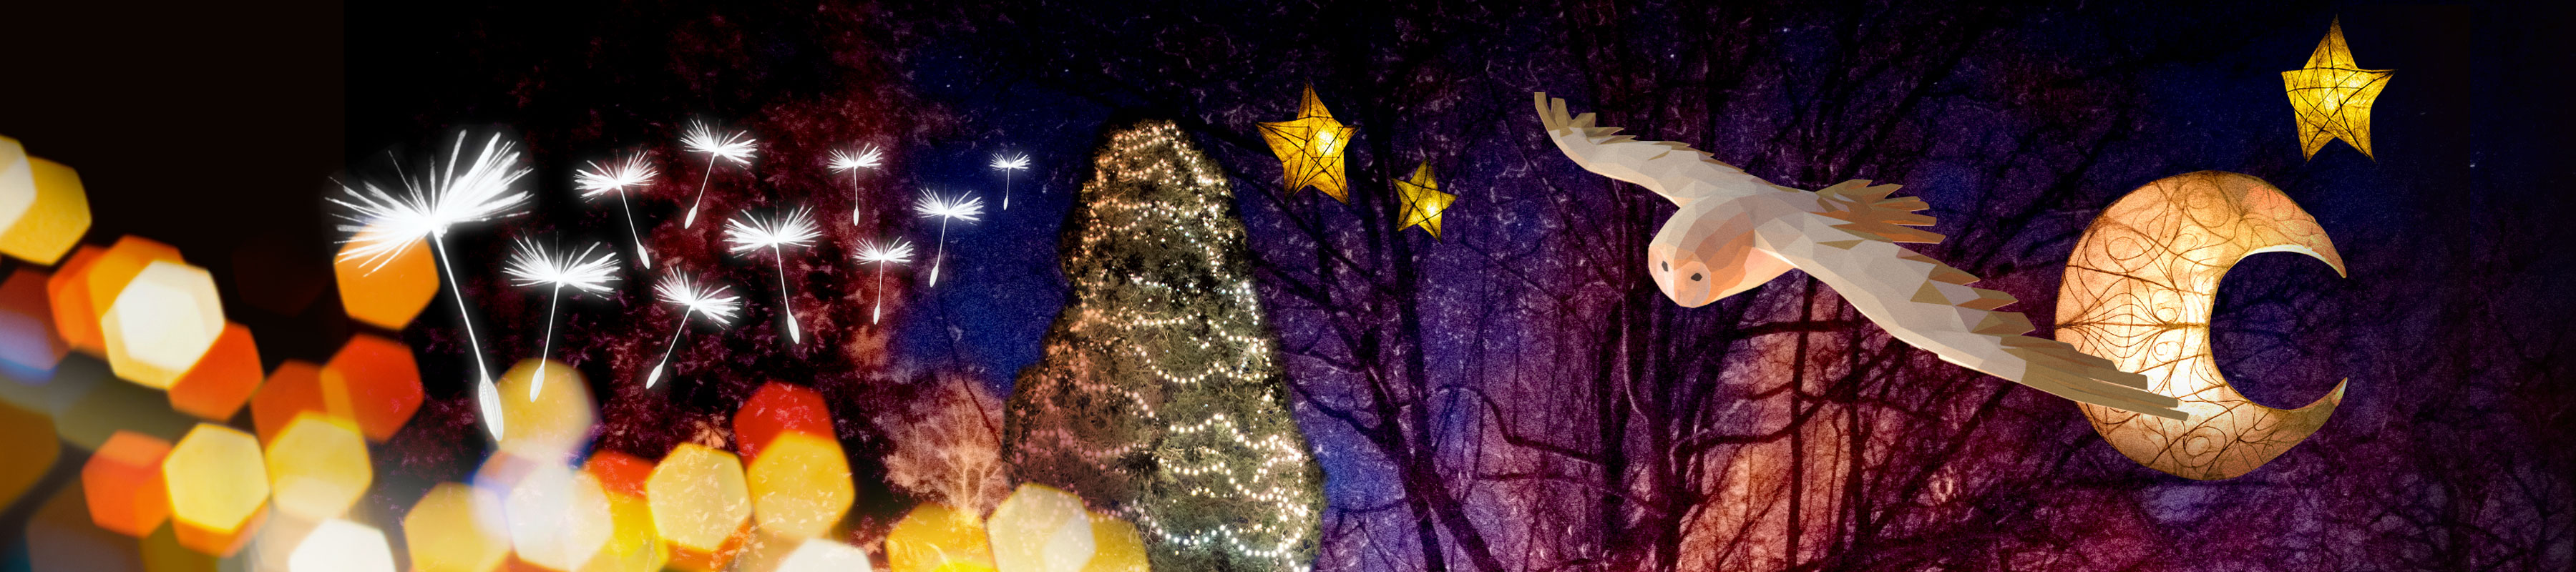 Dandelion seeds, majestic owl, star lanterns and the UK's tallest Christmas tree